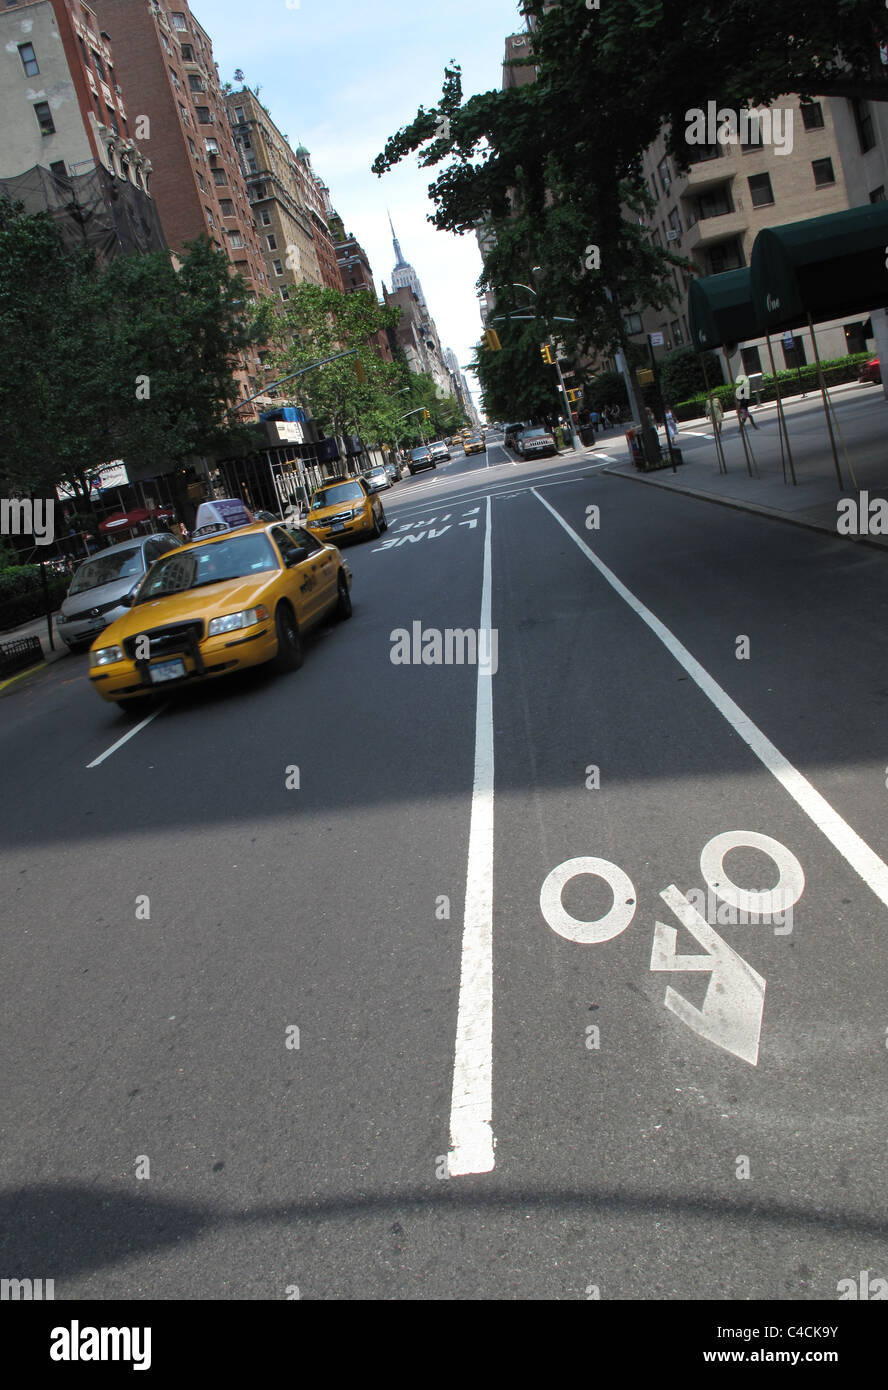 Cycle lane and cab on fifth avenue, near washington square park, New York - Stock Image